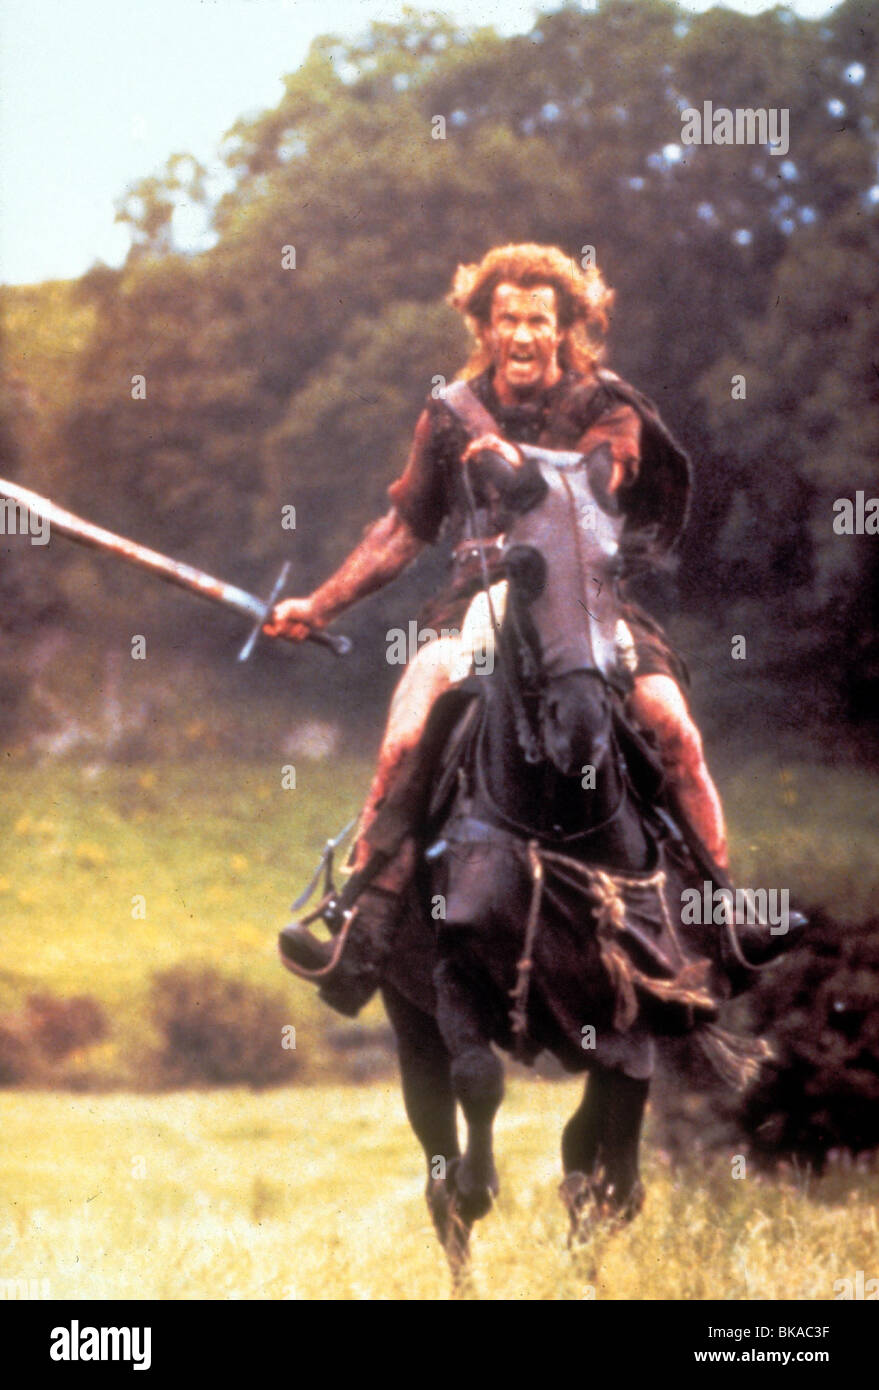 Braveheart 1995 Film Stock Photos Braveheart 1995 Film Stock